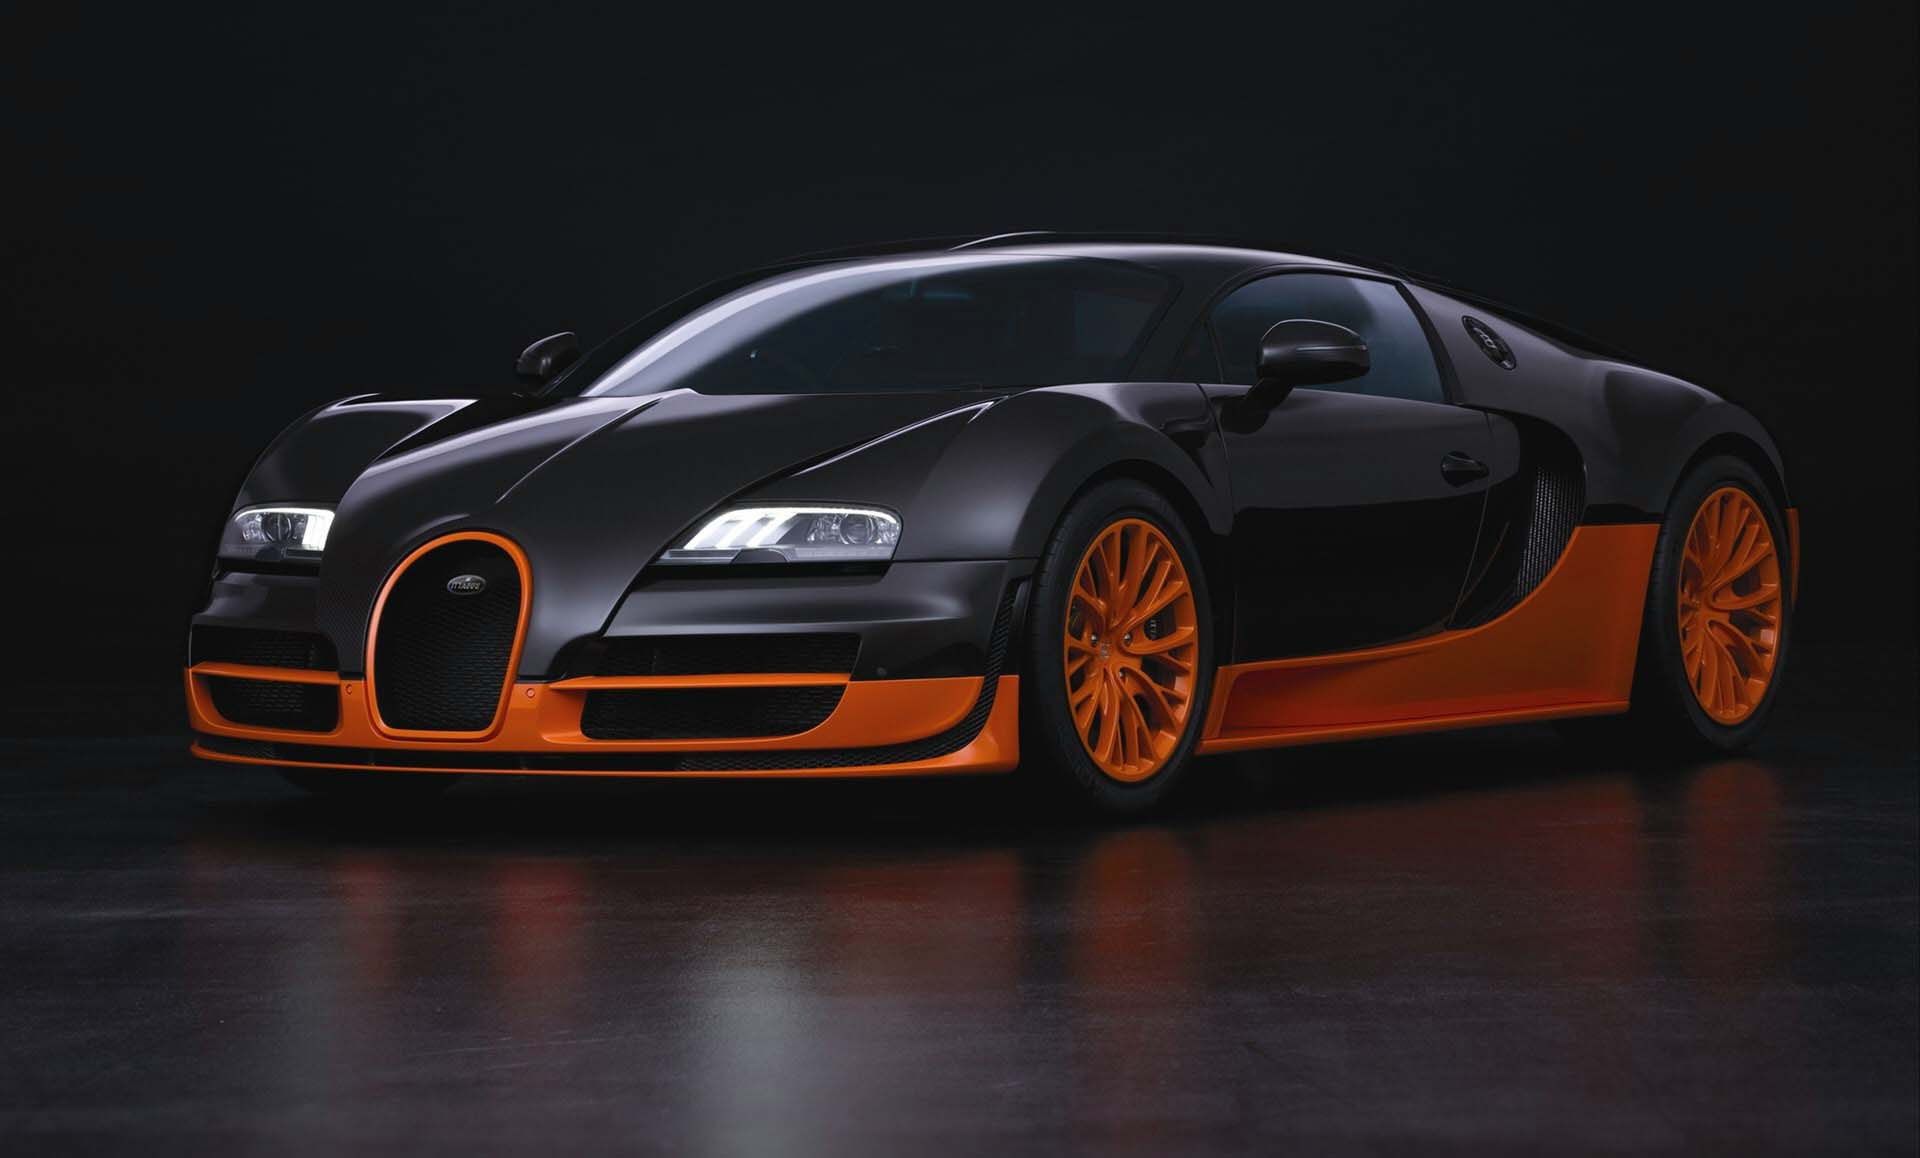 Sport Wallpaper Bugatti Veyron: 50 Bugatti Veyron Wallpaper HD For Laptop